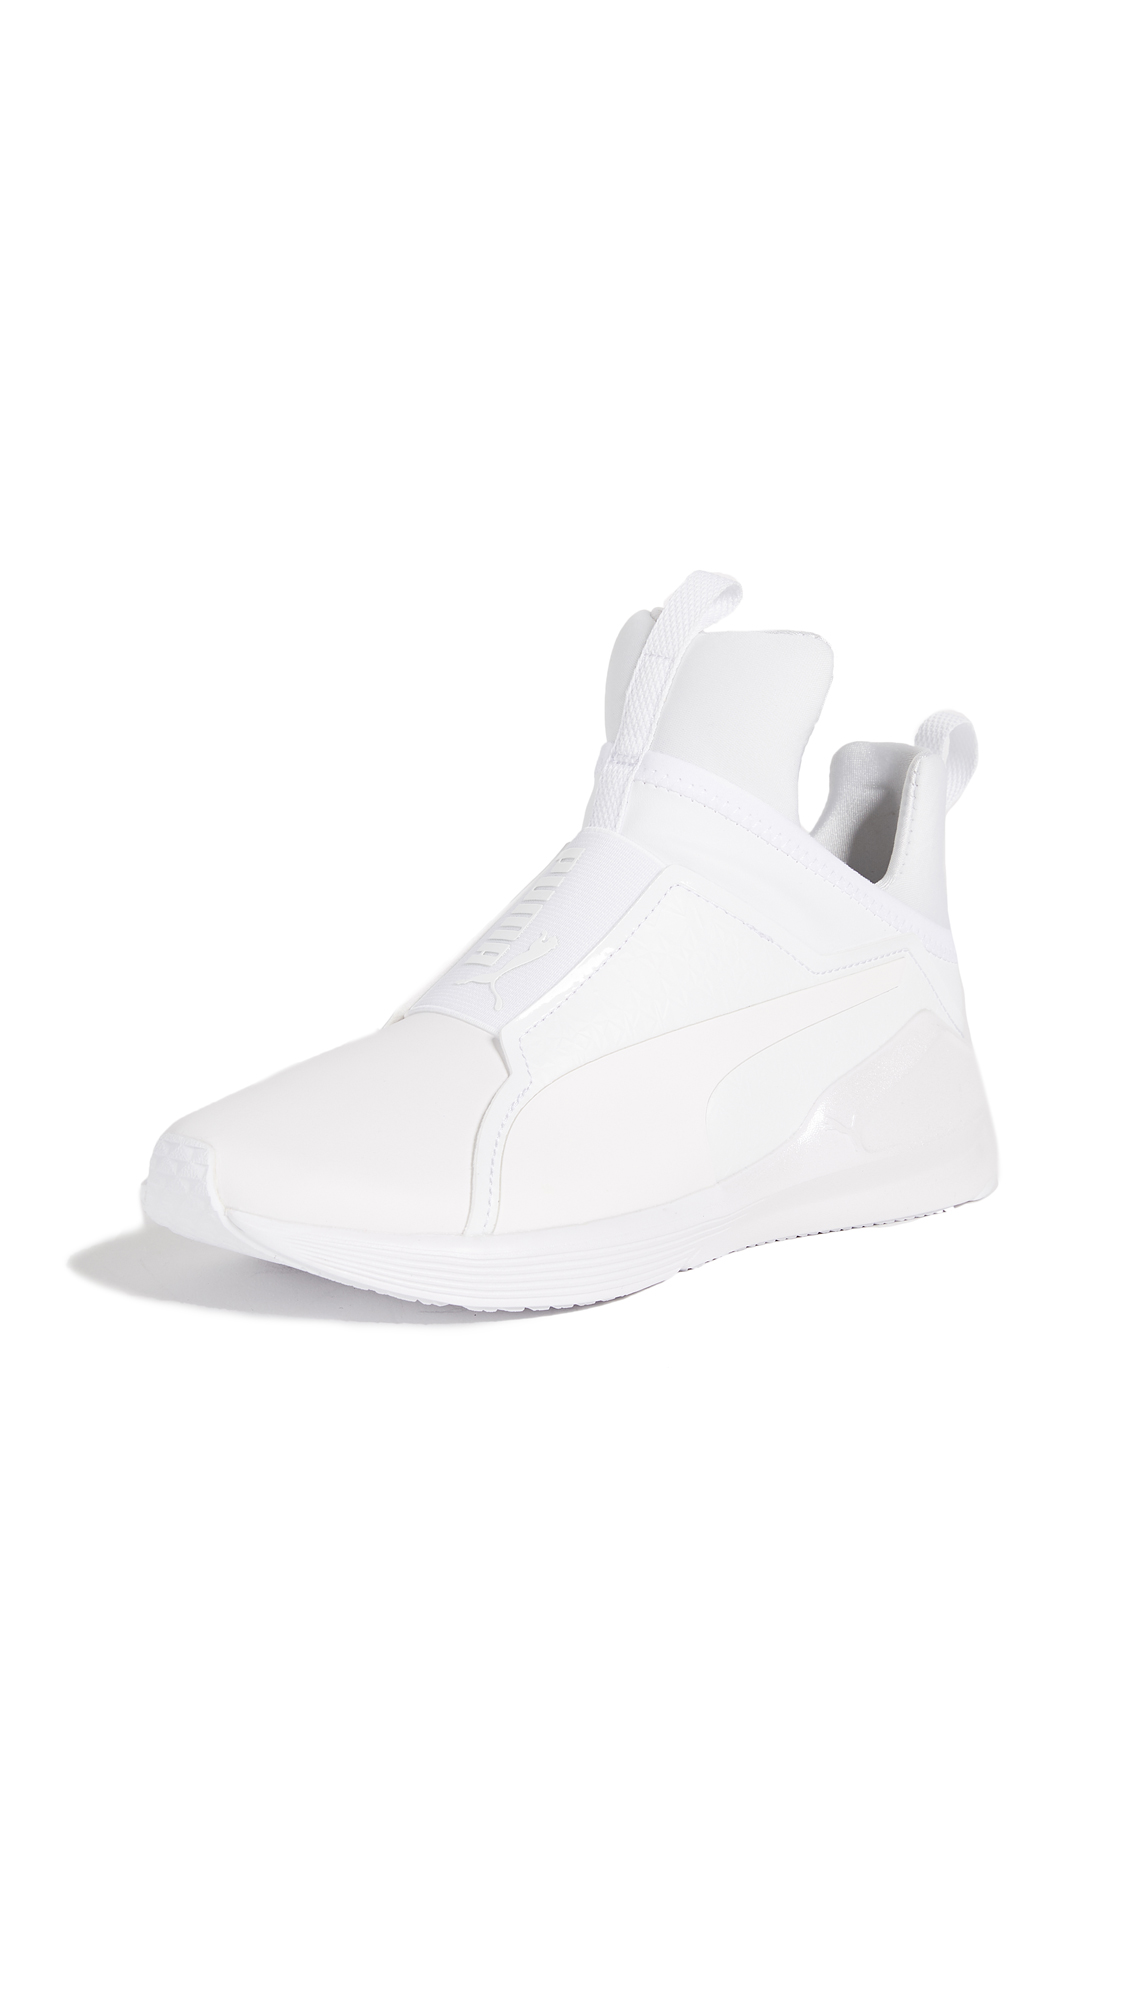 PUMA Fierce Chalet Trainers - Puma White